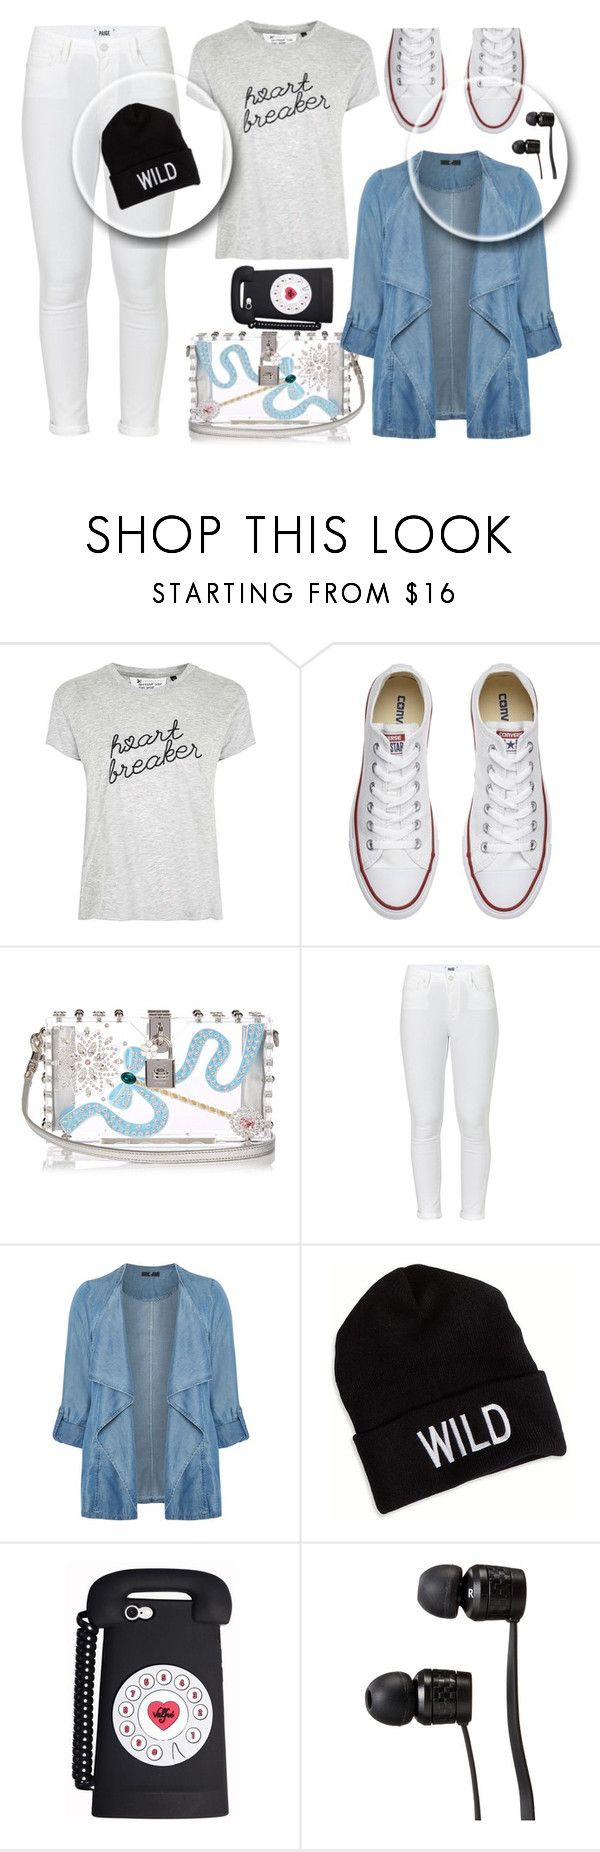 """fall start.. bak sena"" by naomy-nona ❤ liked on Polyvore featuring Tee and Cake, Converse, Dolce&Gabbana, Paige Denim, Evans, American Eagle Outfitters, Vans and plus size clothing"